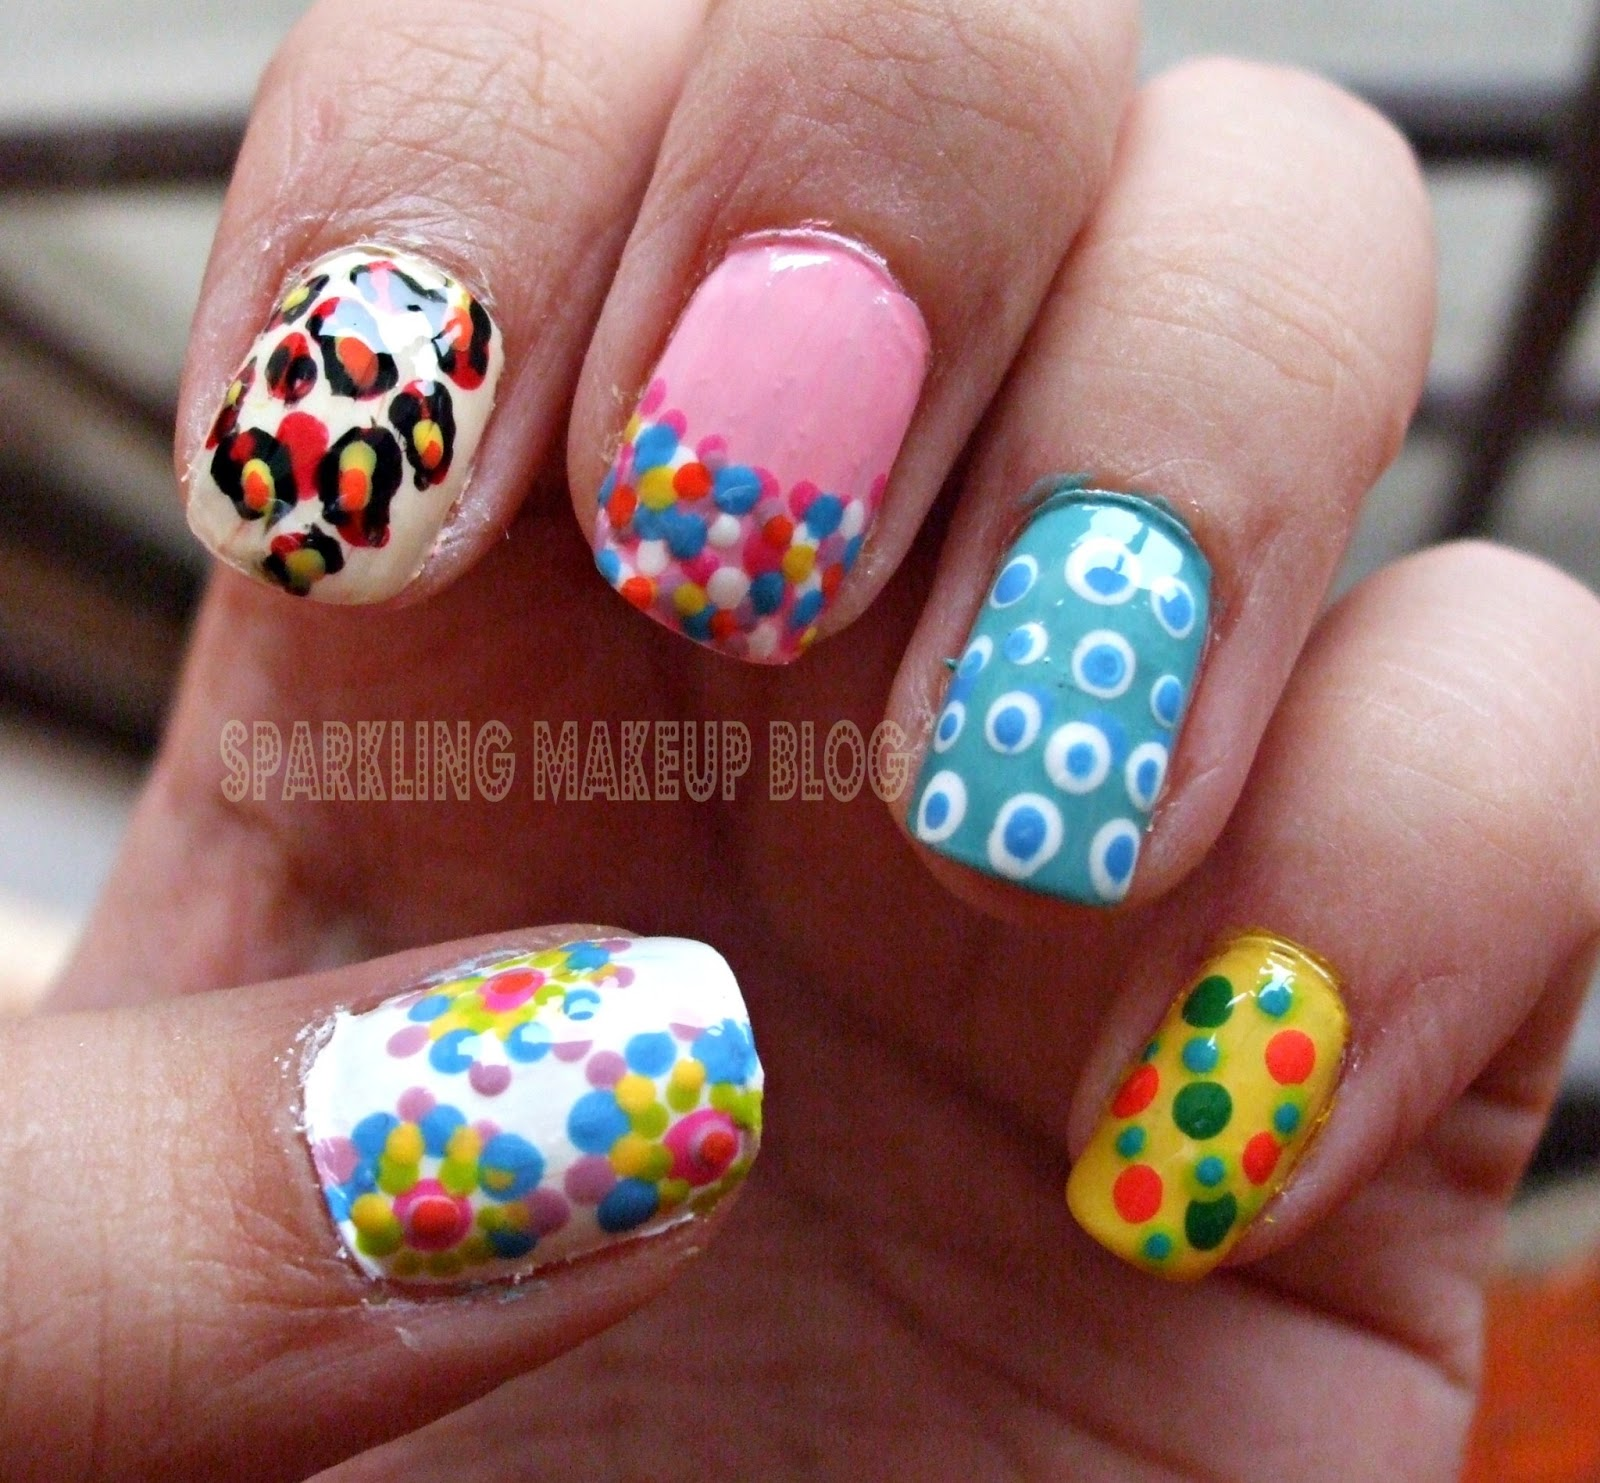 2 Way Wooden Dotting Pen Tool from Born Pretty Store~ Nail Art ...